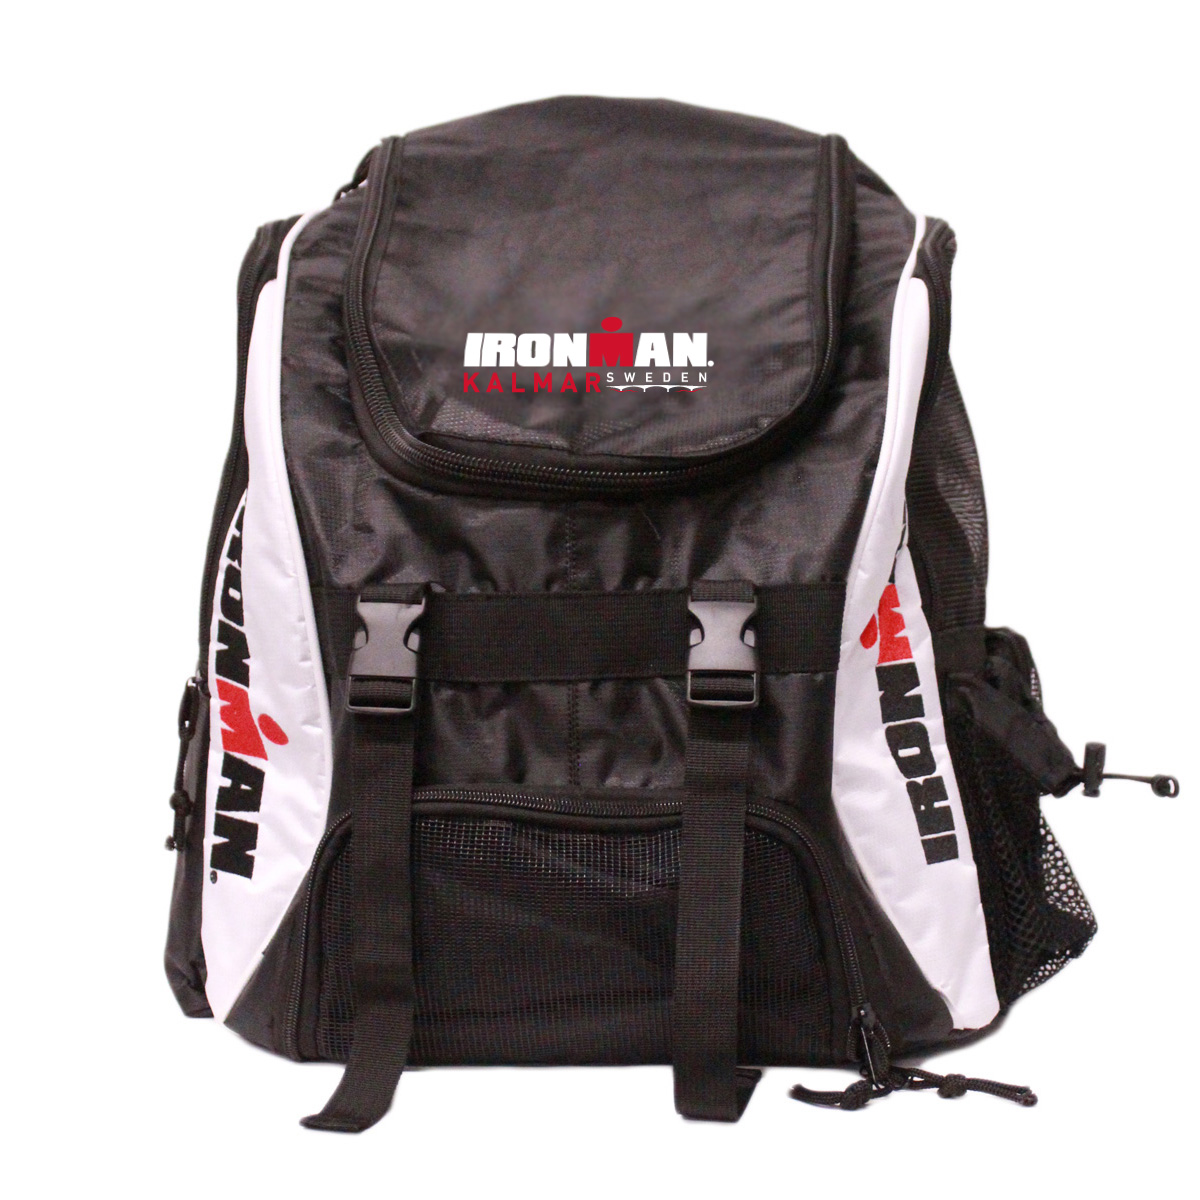 IRONMAN SWEDEN 2019 EVENT BACKPACK